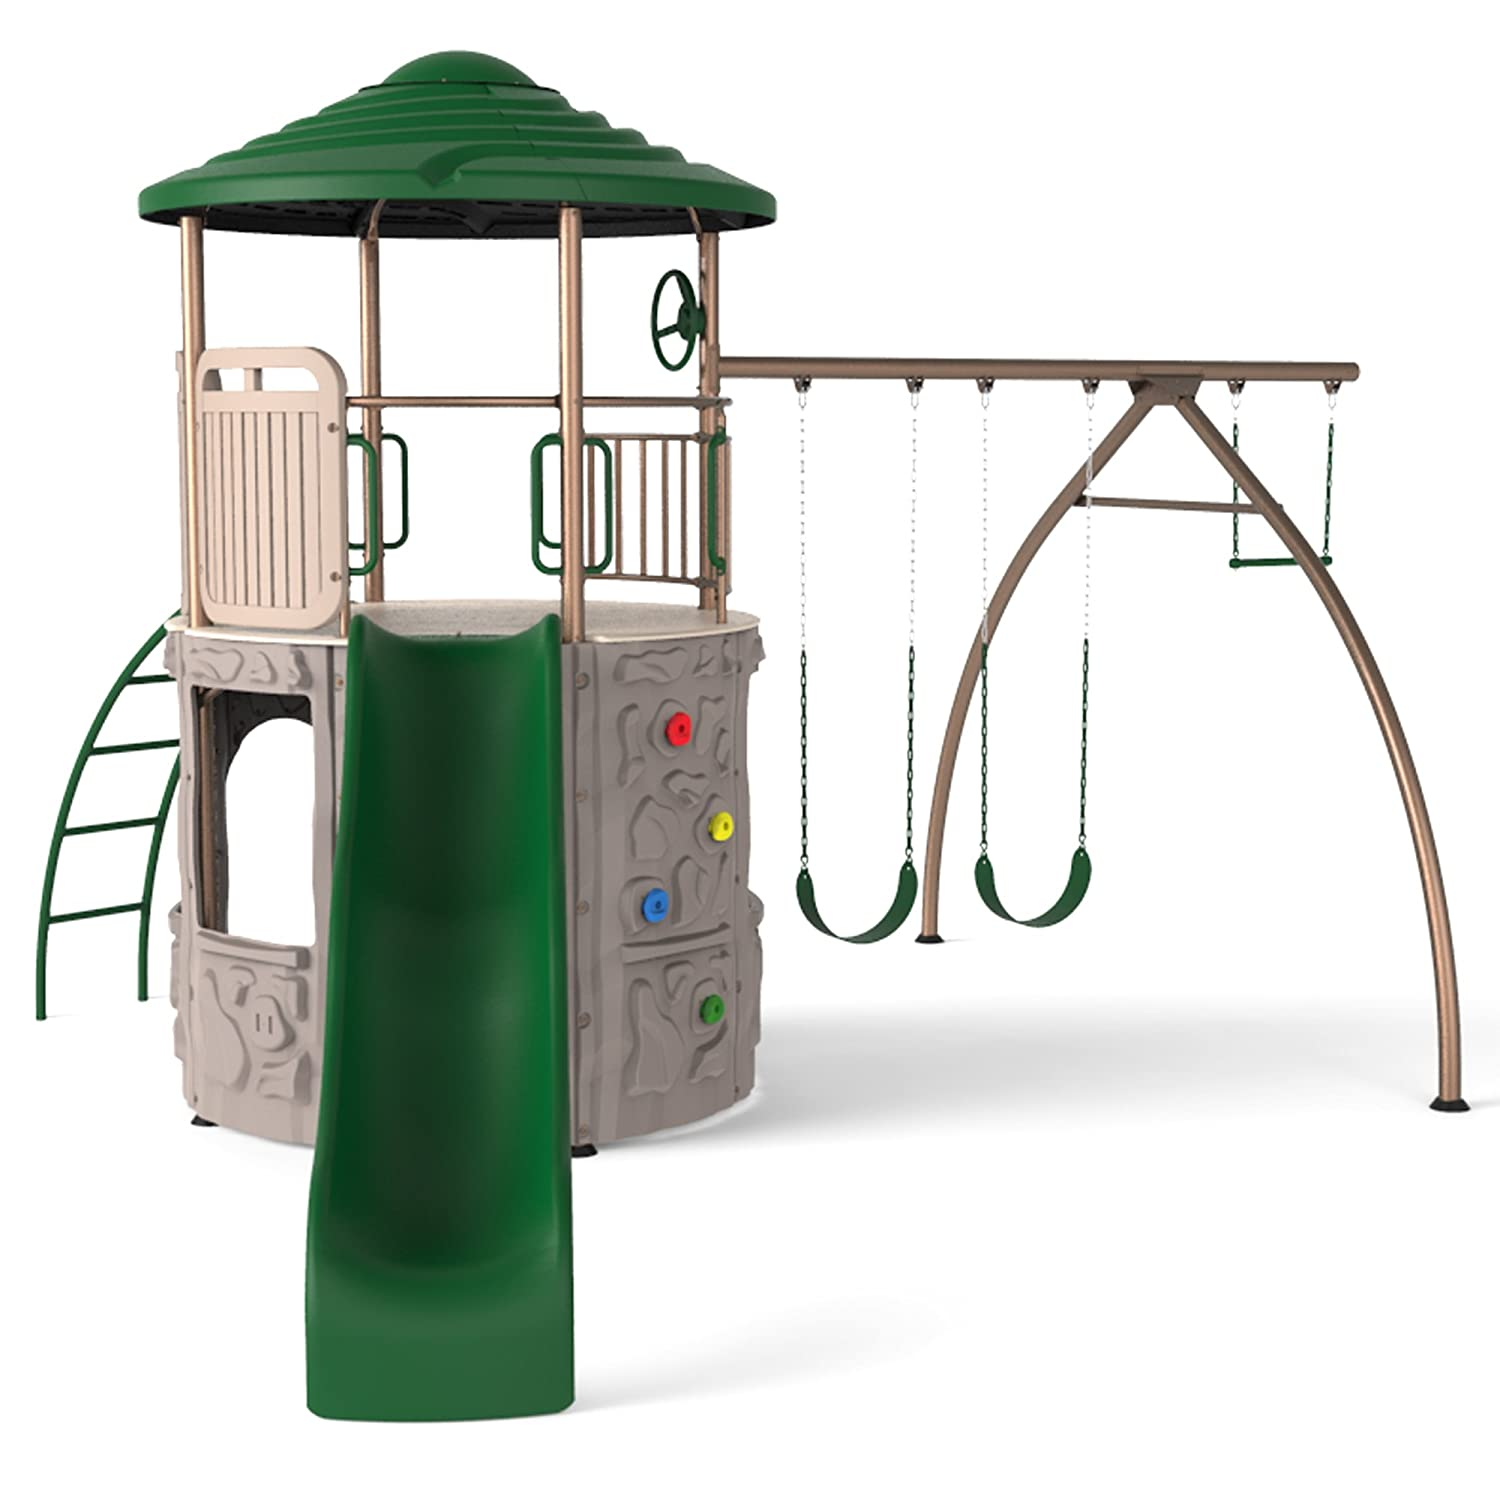 smothery set to shelbyville play lifetime video shapely with playsets along cedar playset wayfair outdoor famed residential gallery sets together gorilla ground then playground summit costco swing dk and